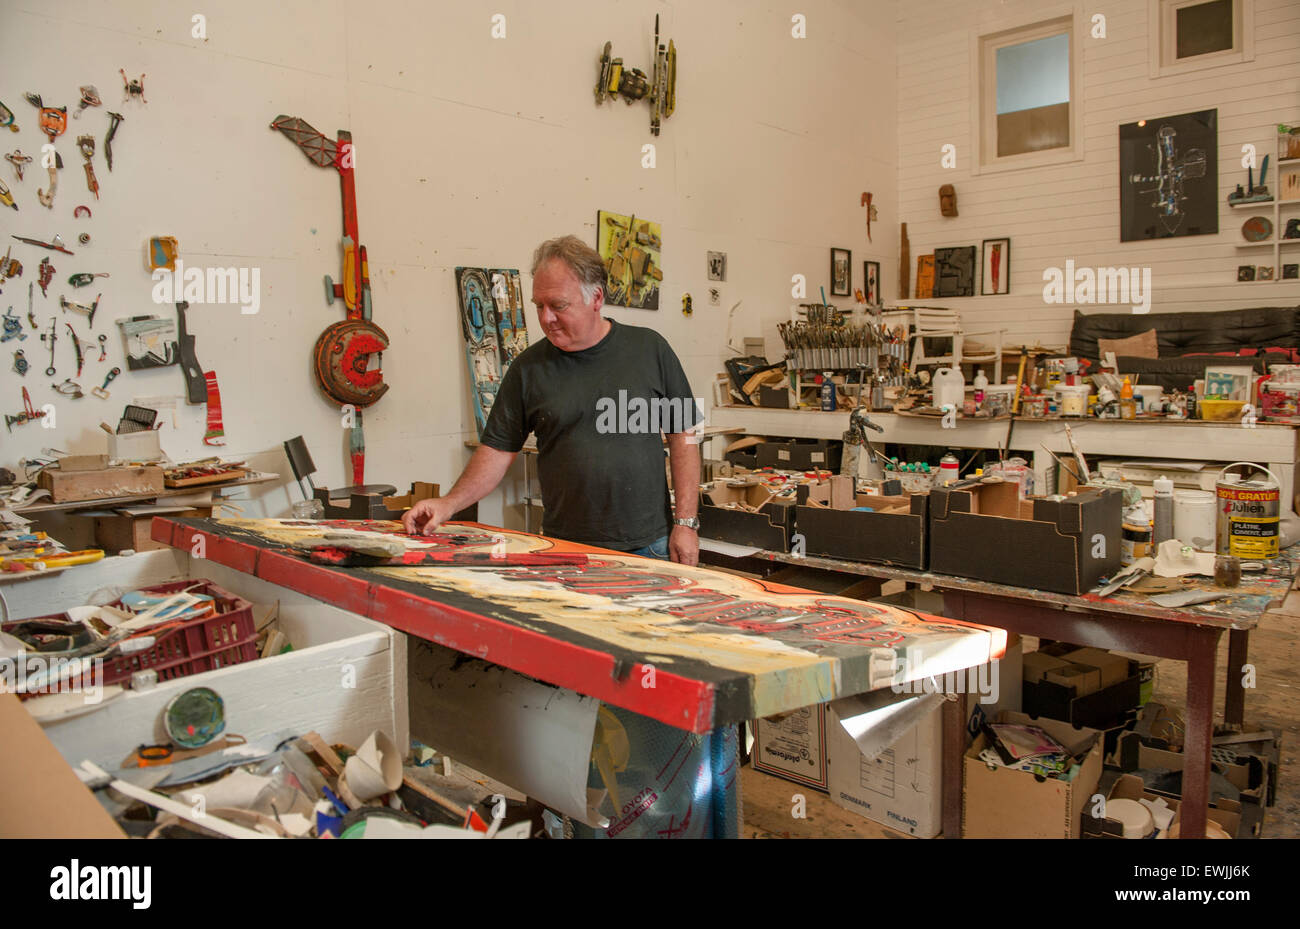 French artist Patrick Chappert-Gaujal in his studio at Leucate-La Franqui, France - Stock Image